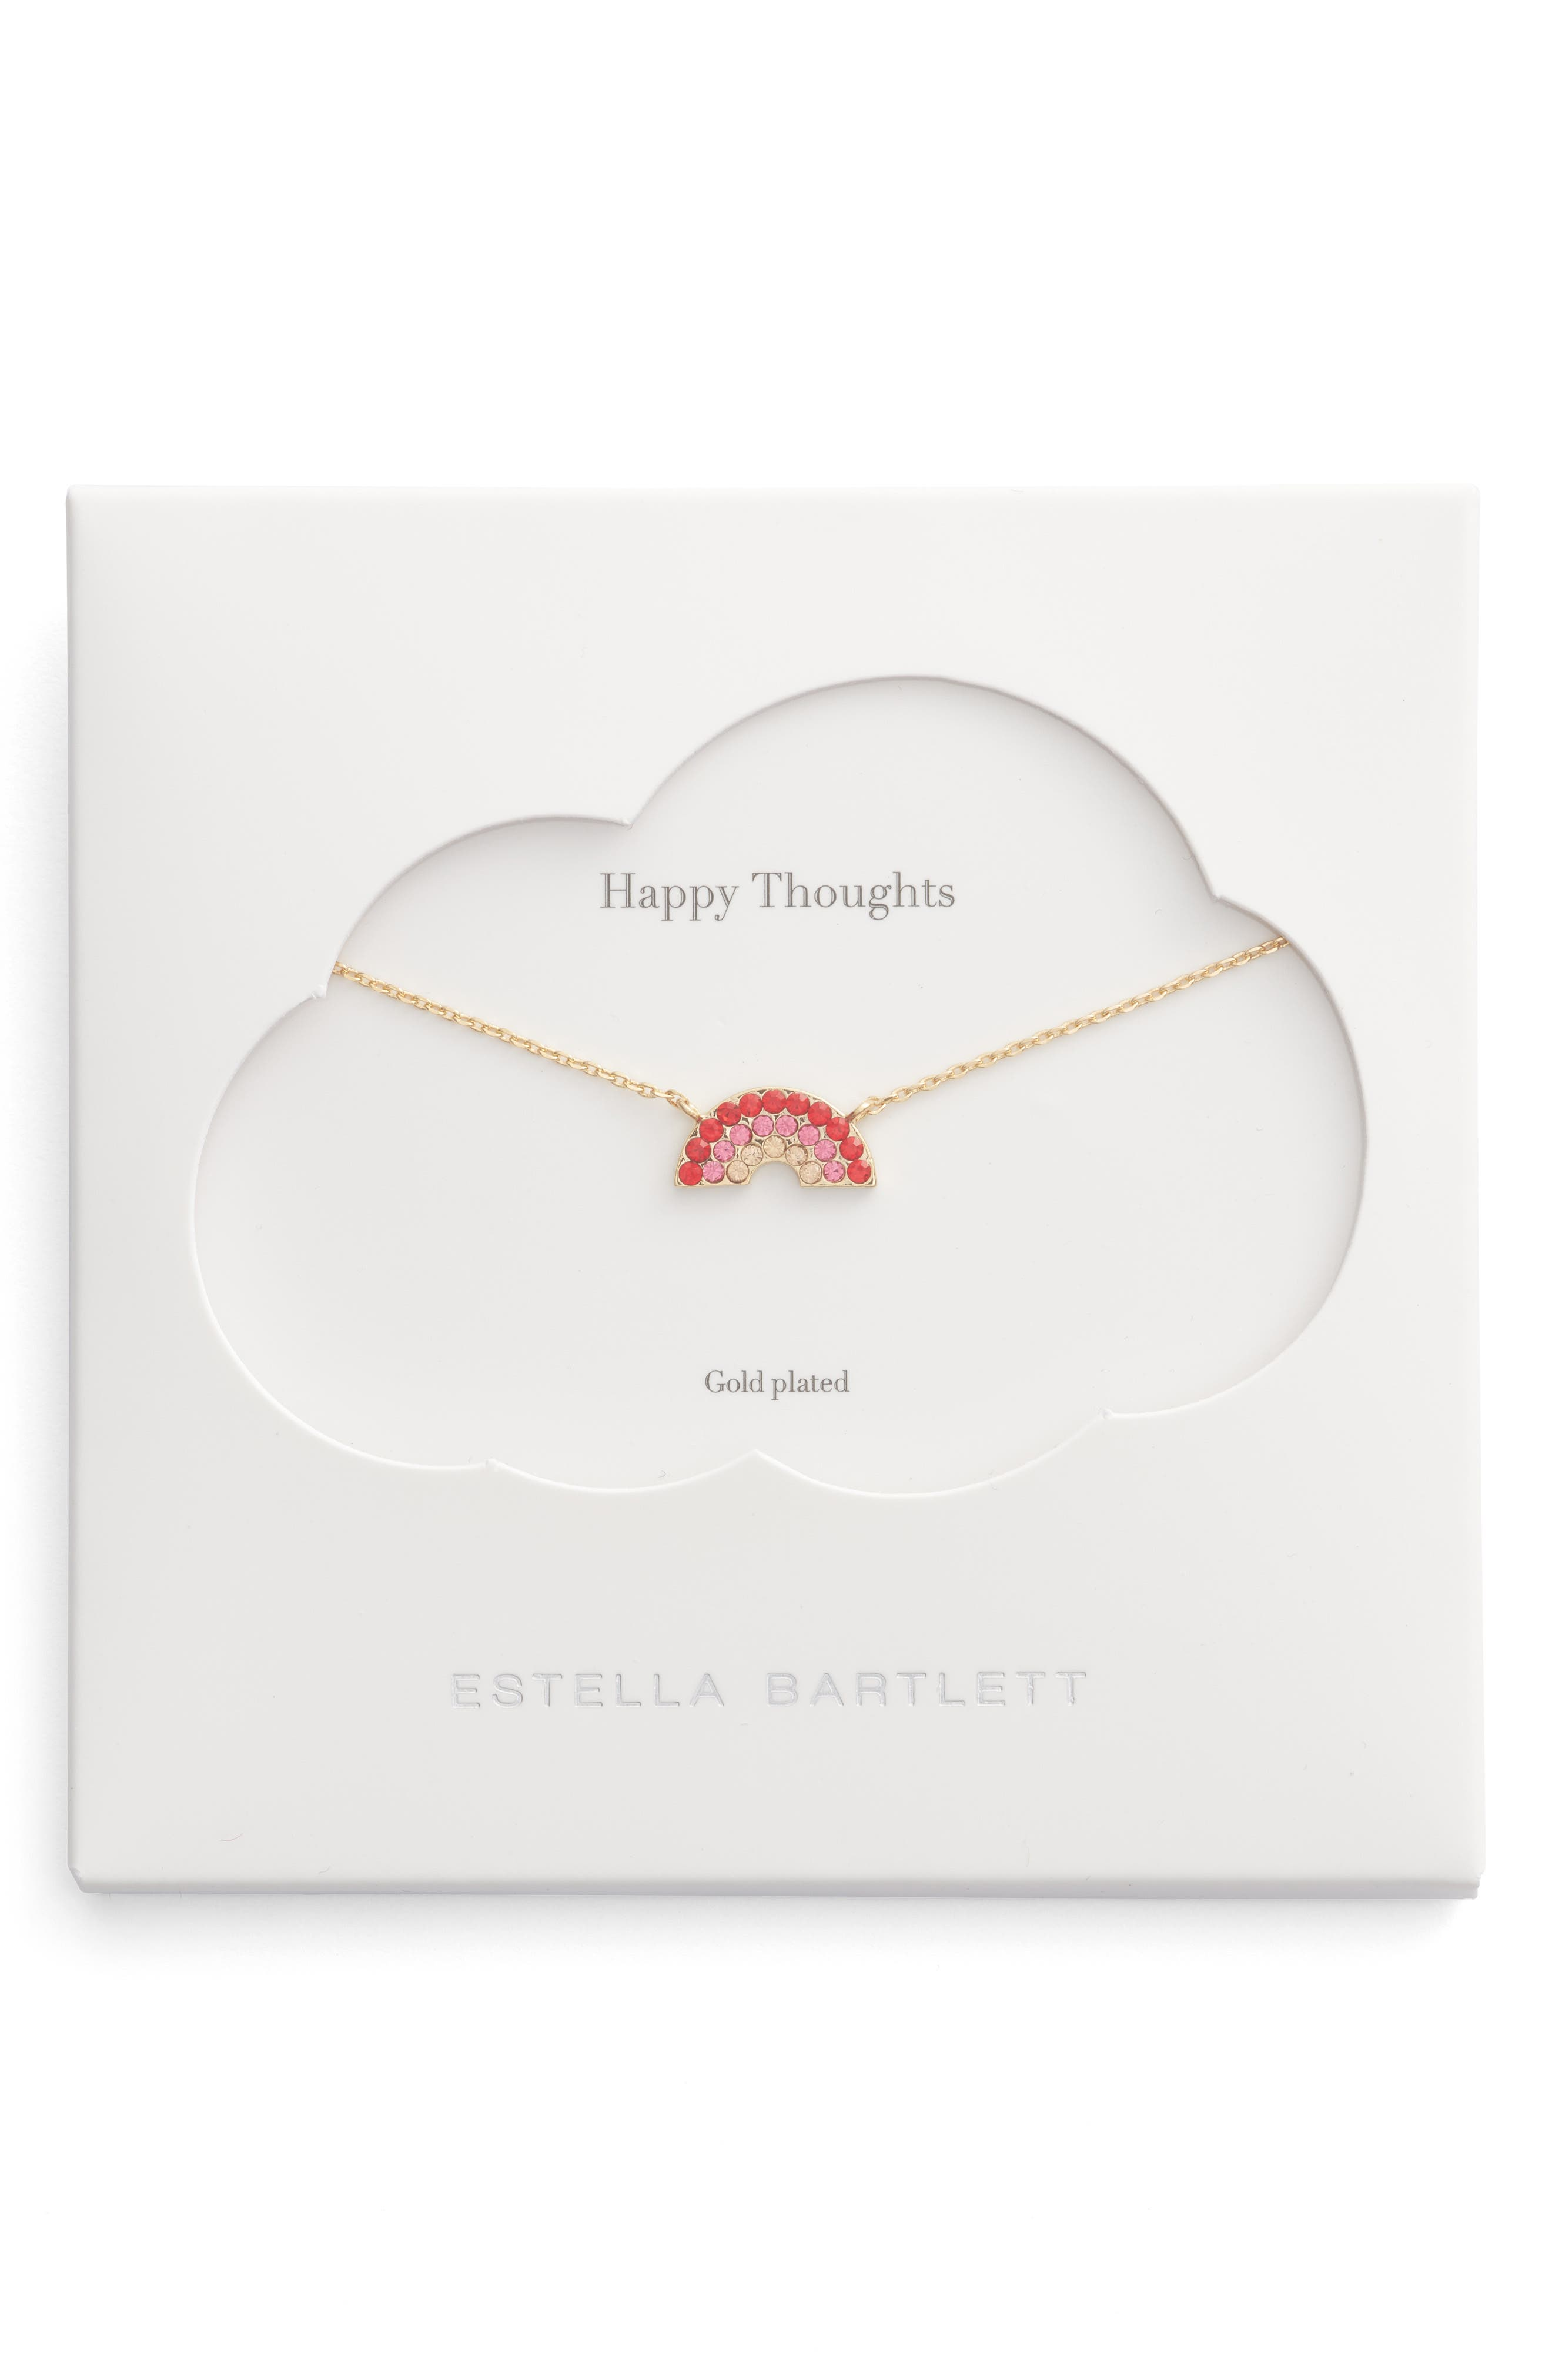 Happy Thoughts Rainbow Necklace,                         Main,                         color, 710